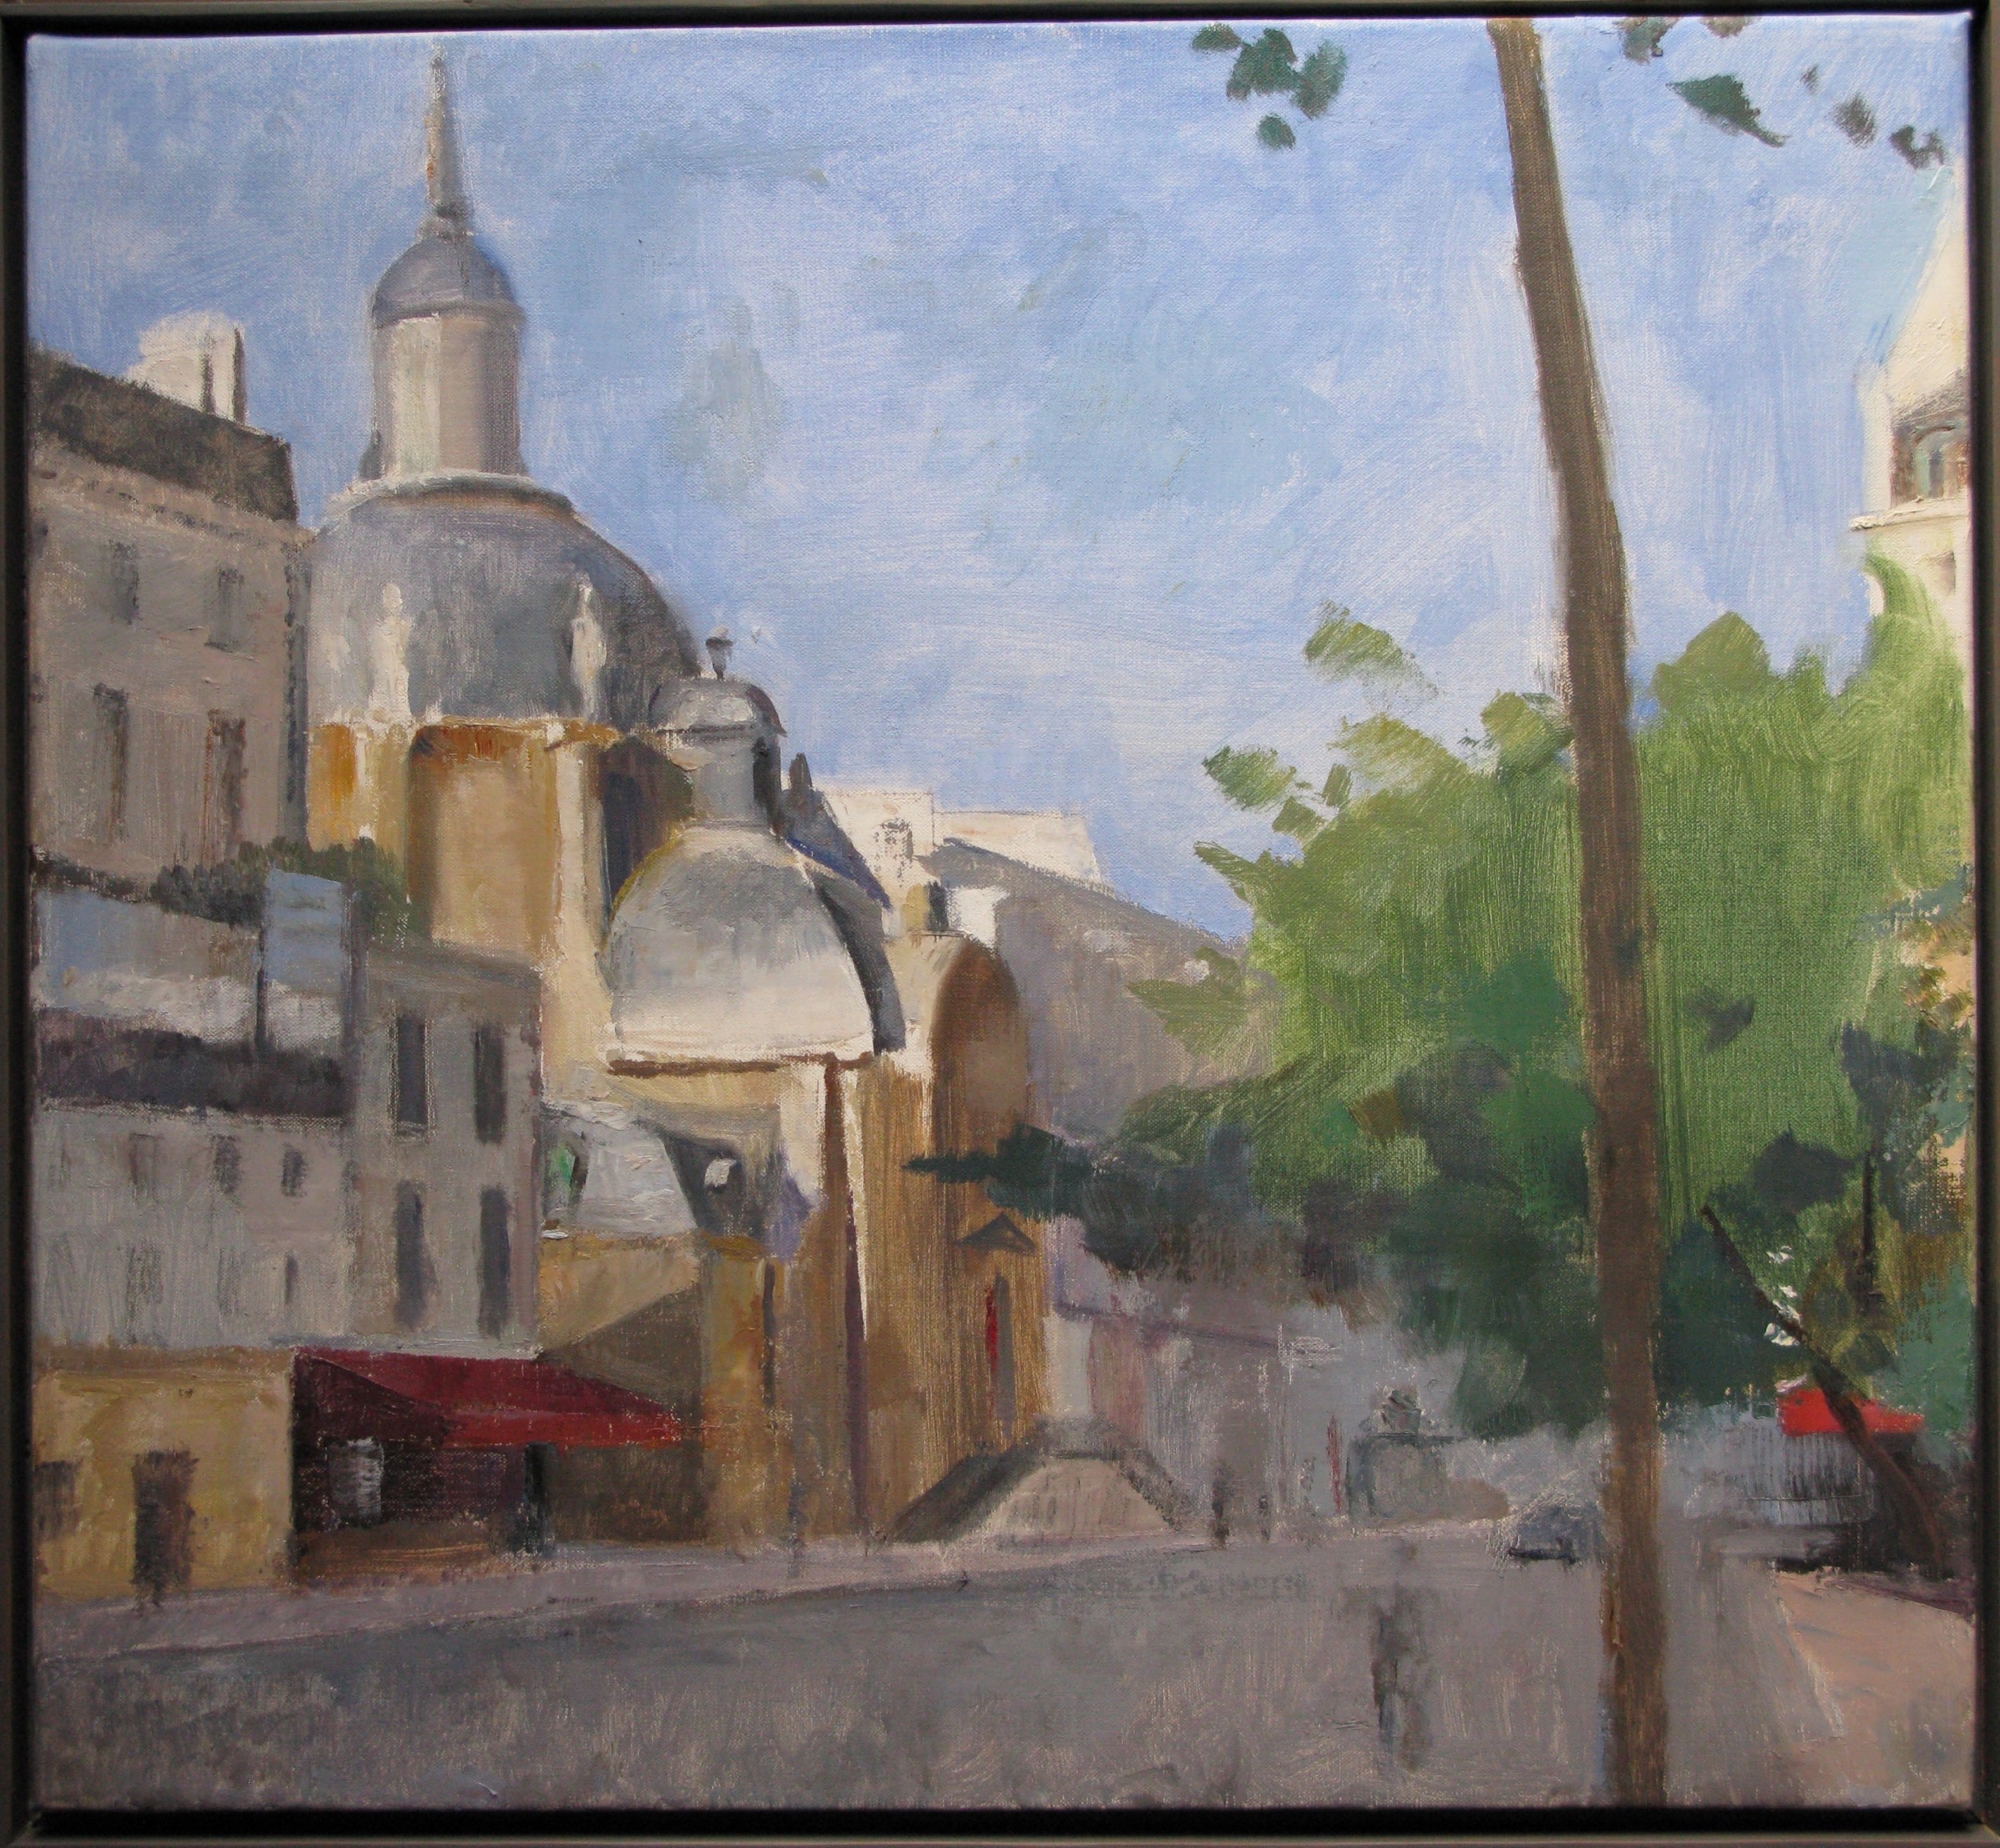 "Temple du Marais, 22"" x 24"", oil on linen"